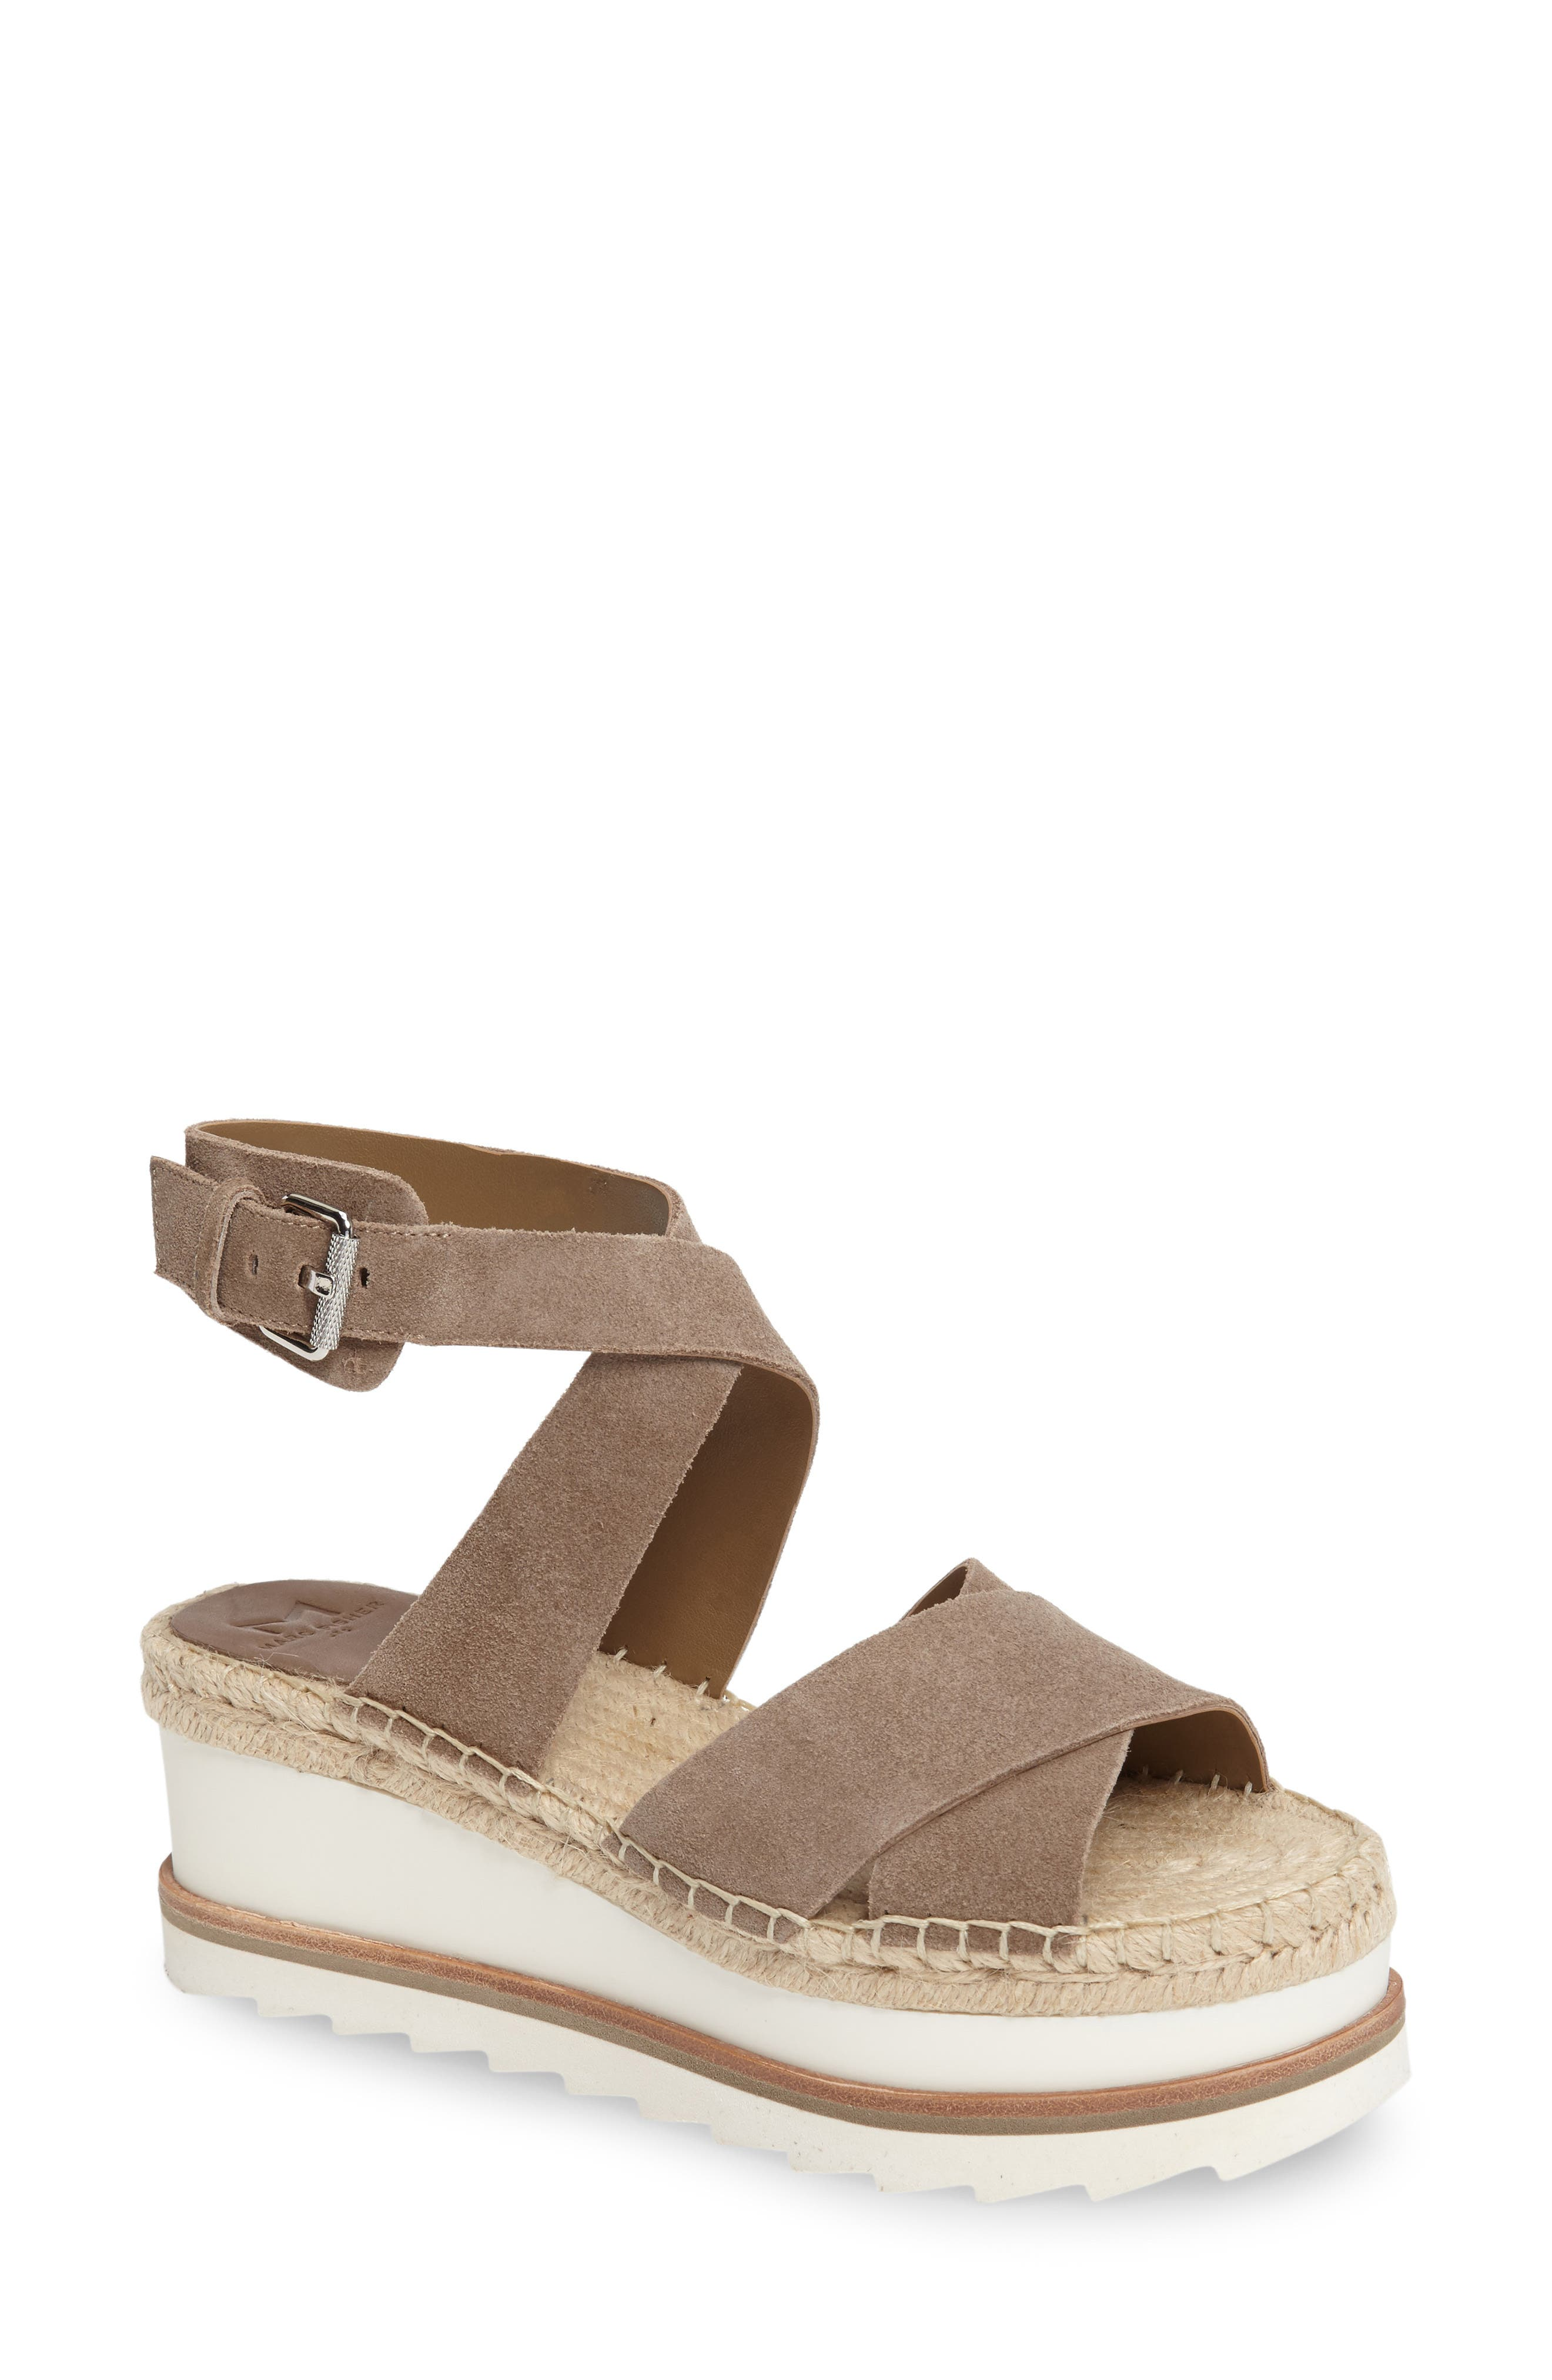 MARC FISHER LTD Greg Platform Wedge Sandal